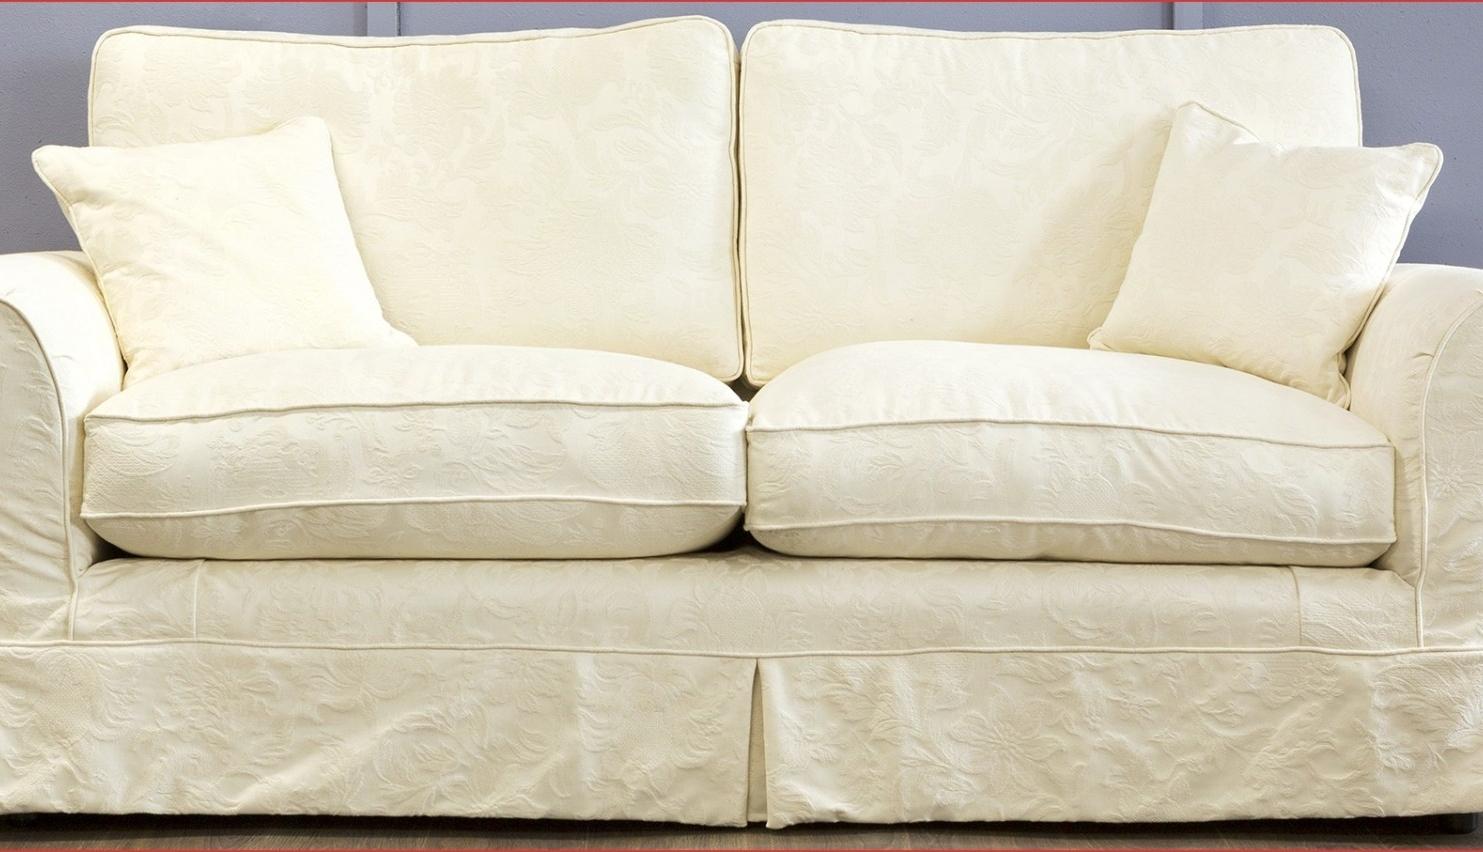 Sofas With Removable Machine Washable Covers Regarding Most Recently Released Sofas With Washable Covers (View 8 of 15)